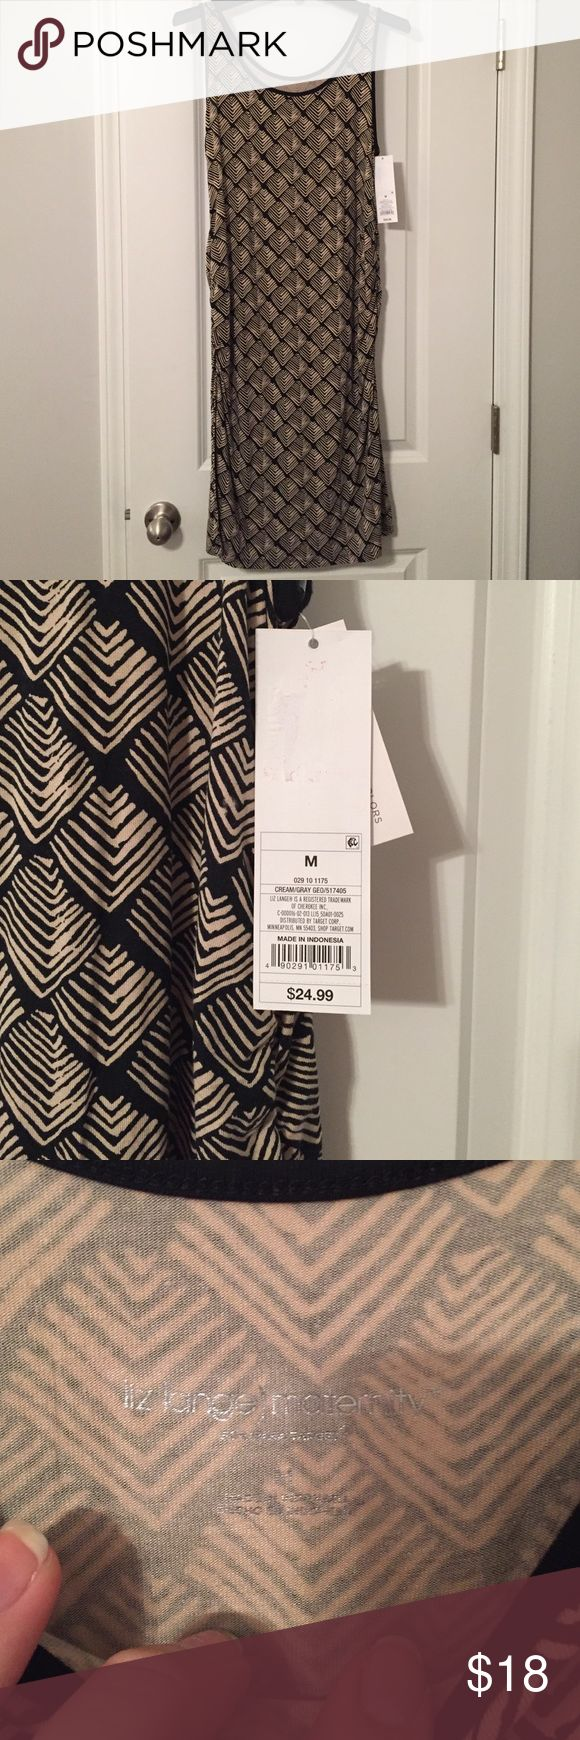 NWT Liz Lange Maternity Aztec Dress Adorable Aztec maternity dress. Brand new. Gathered sides. Can be worn even if you're not pregnant :) Thank you for stopping by! Comes from a smoke free home. Please feel free to make an offer. Happy Shopping! Liz Lange for Target Dresses